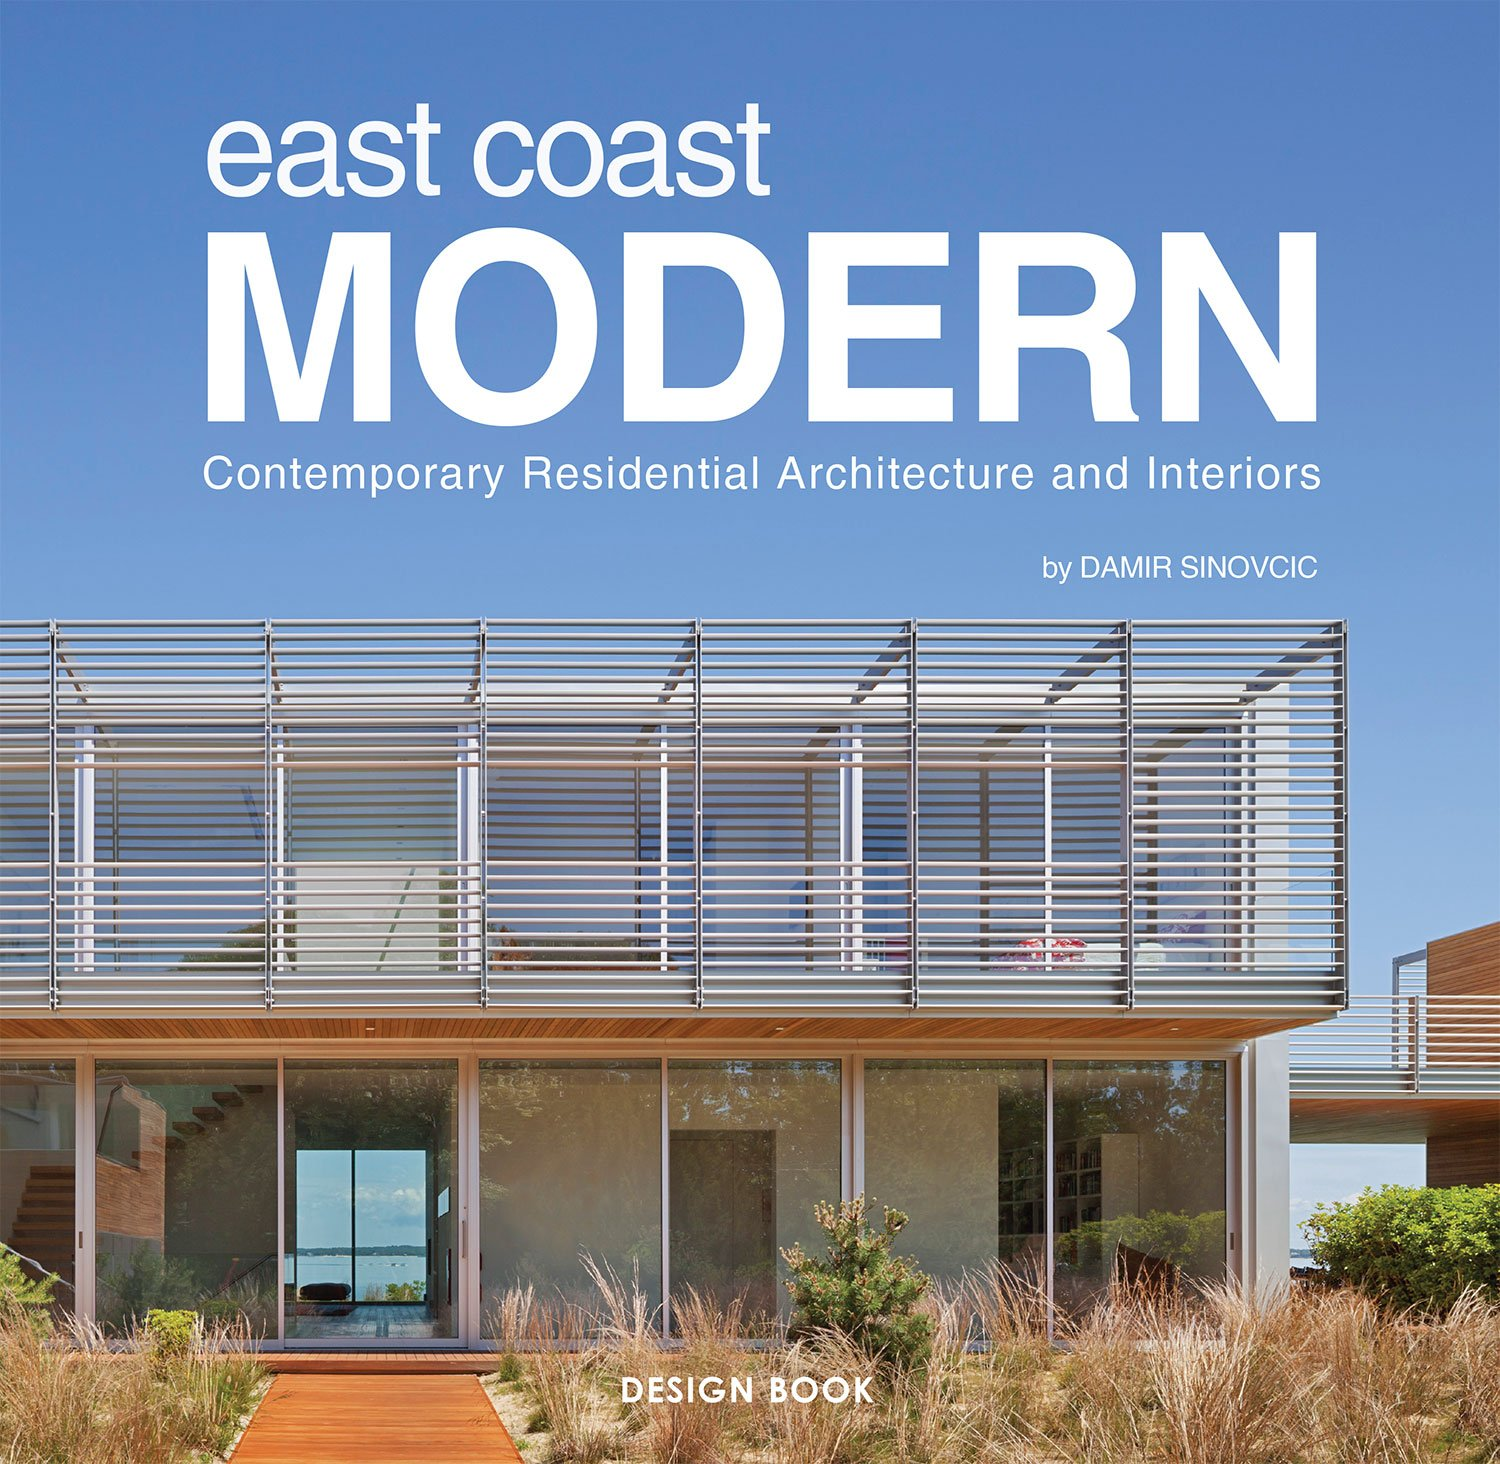 East Coast Modern Contemporary Residential Architecture And Interiors Damir Sinovcic 9781936344055 Amazon Com Books